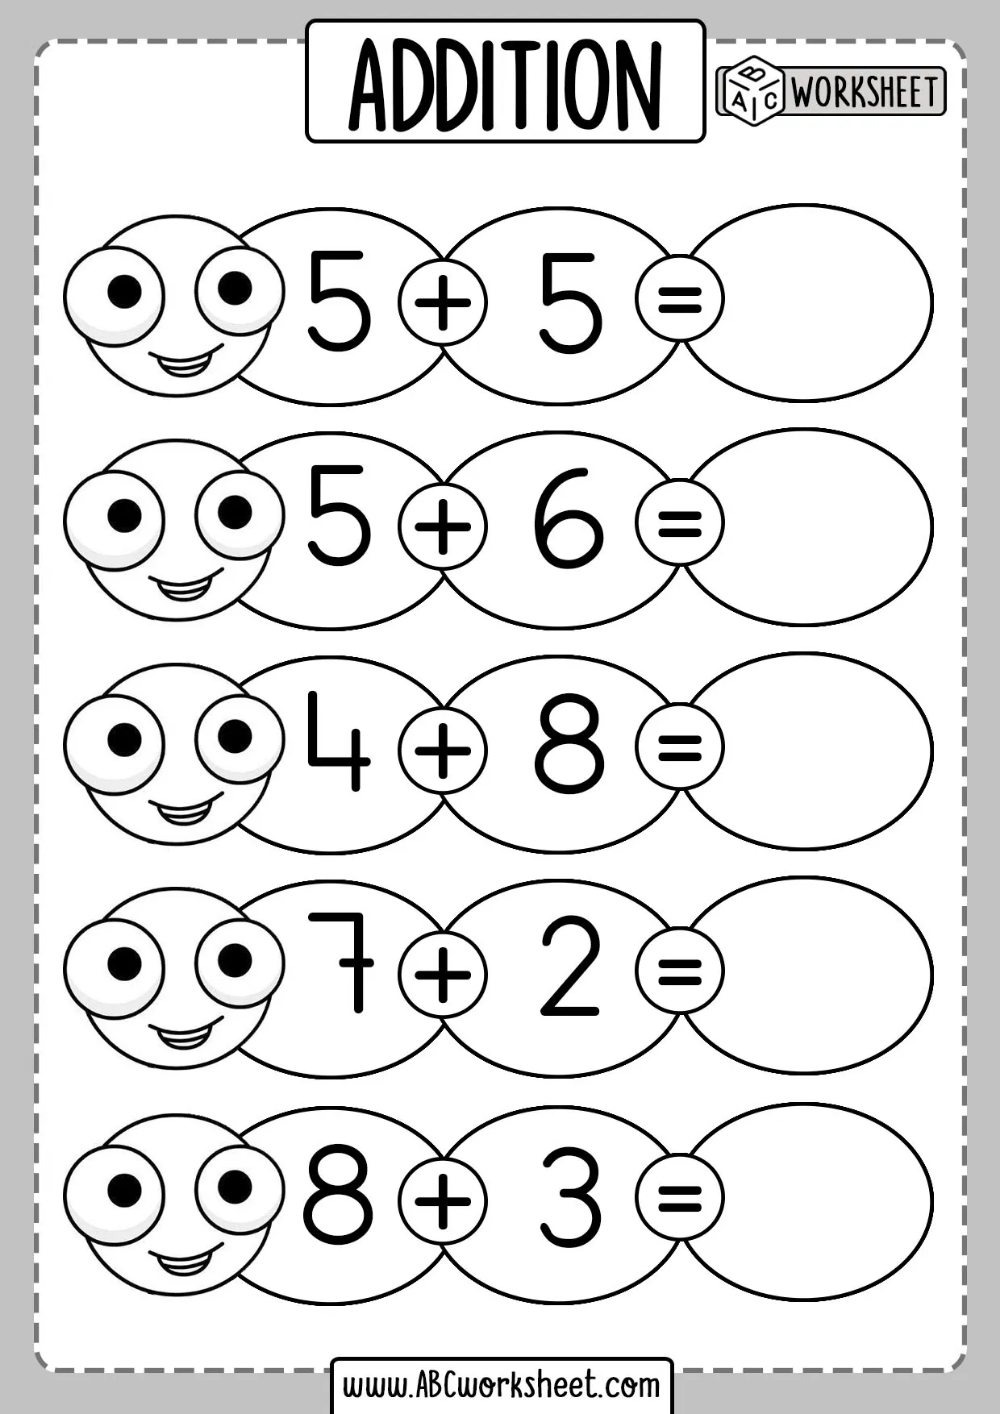 small resolution of Addition Sums For Grade Kids Worksheet   Addition worksheets